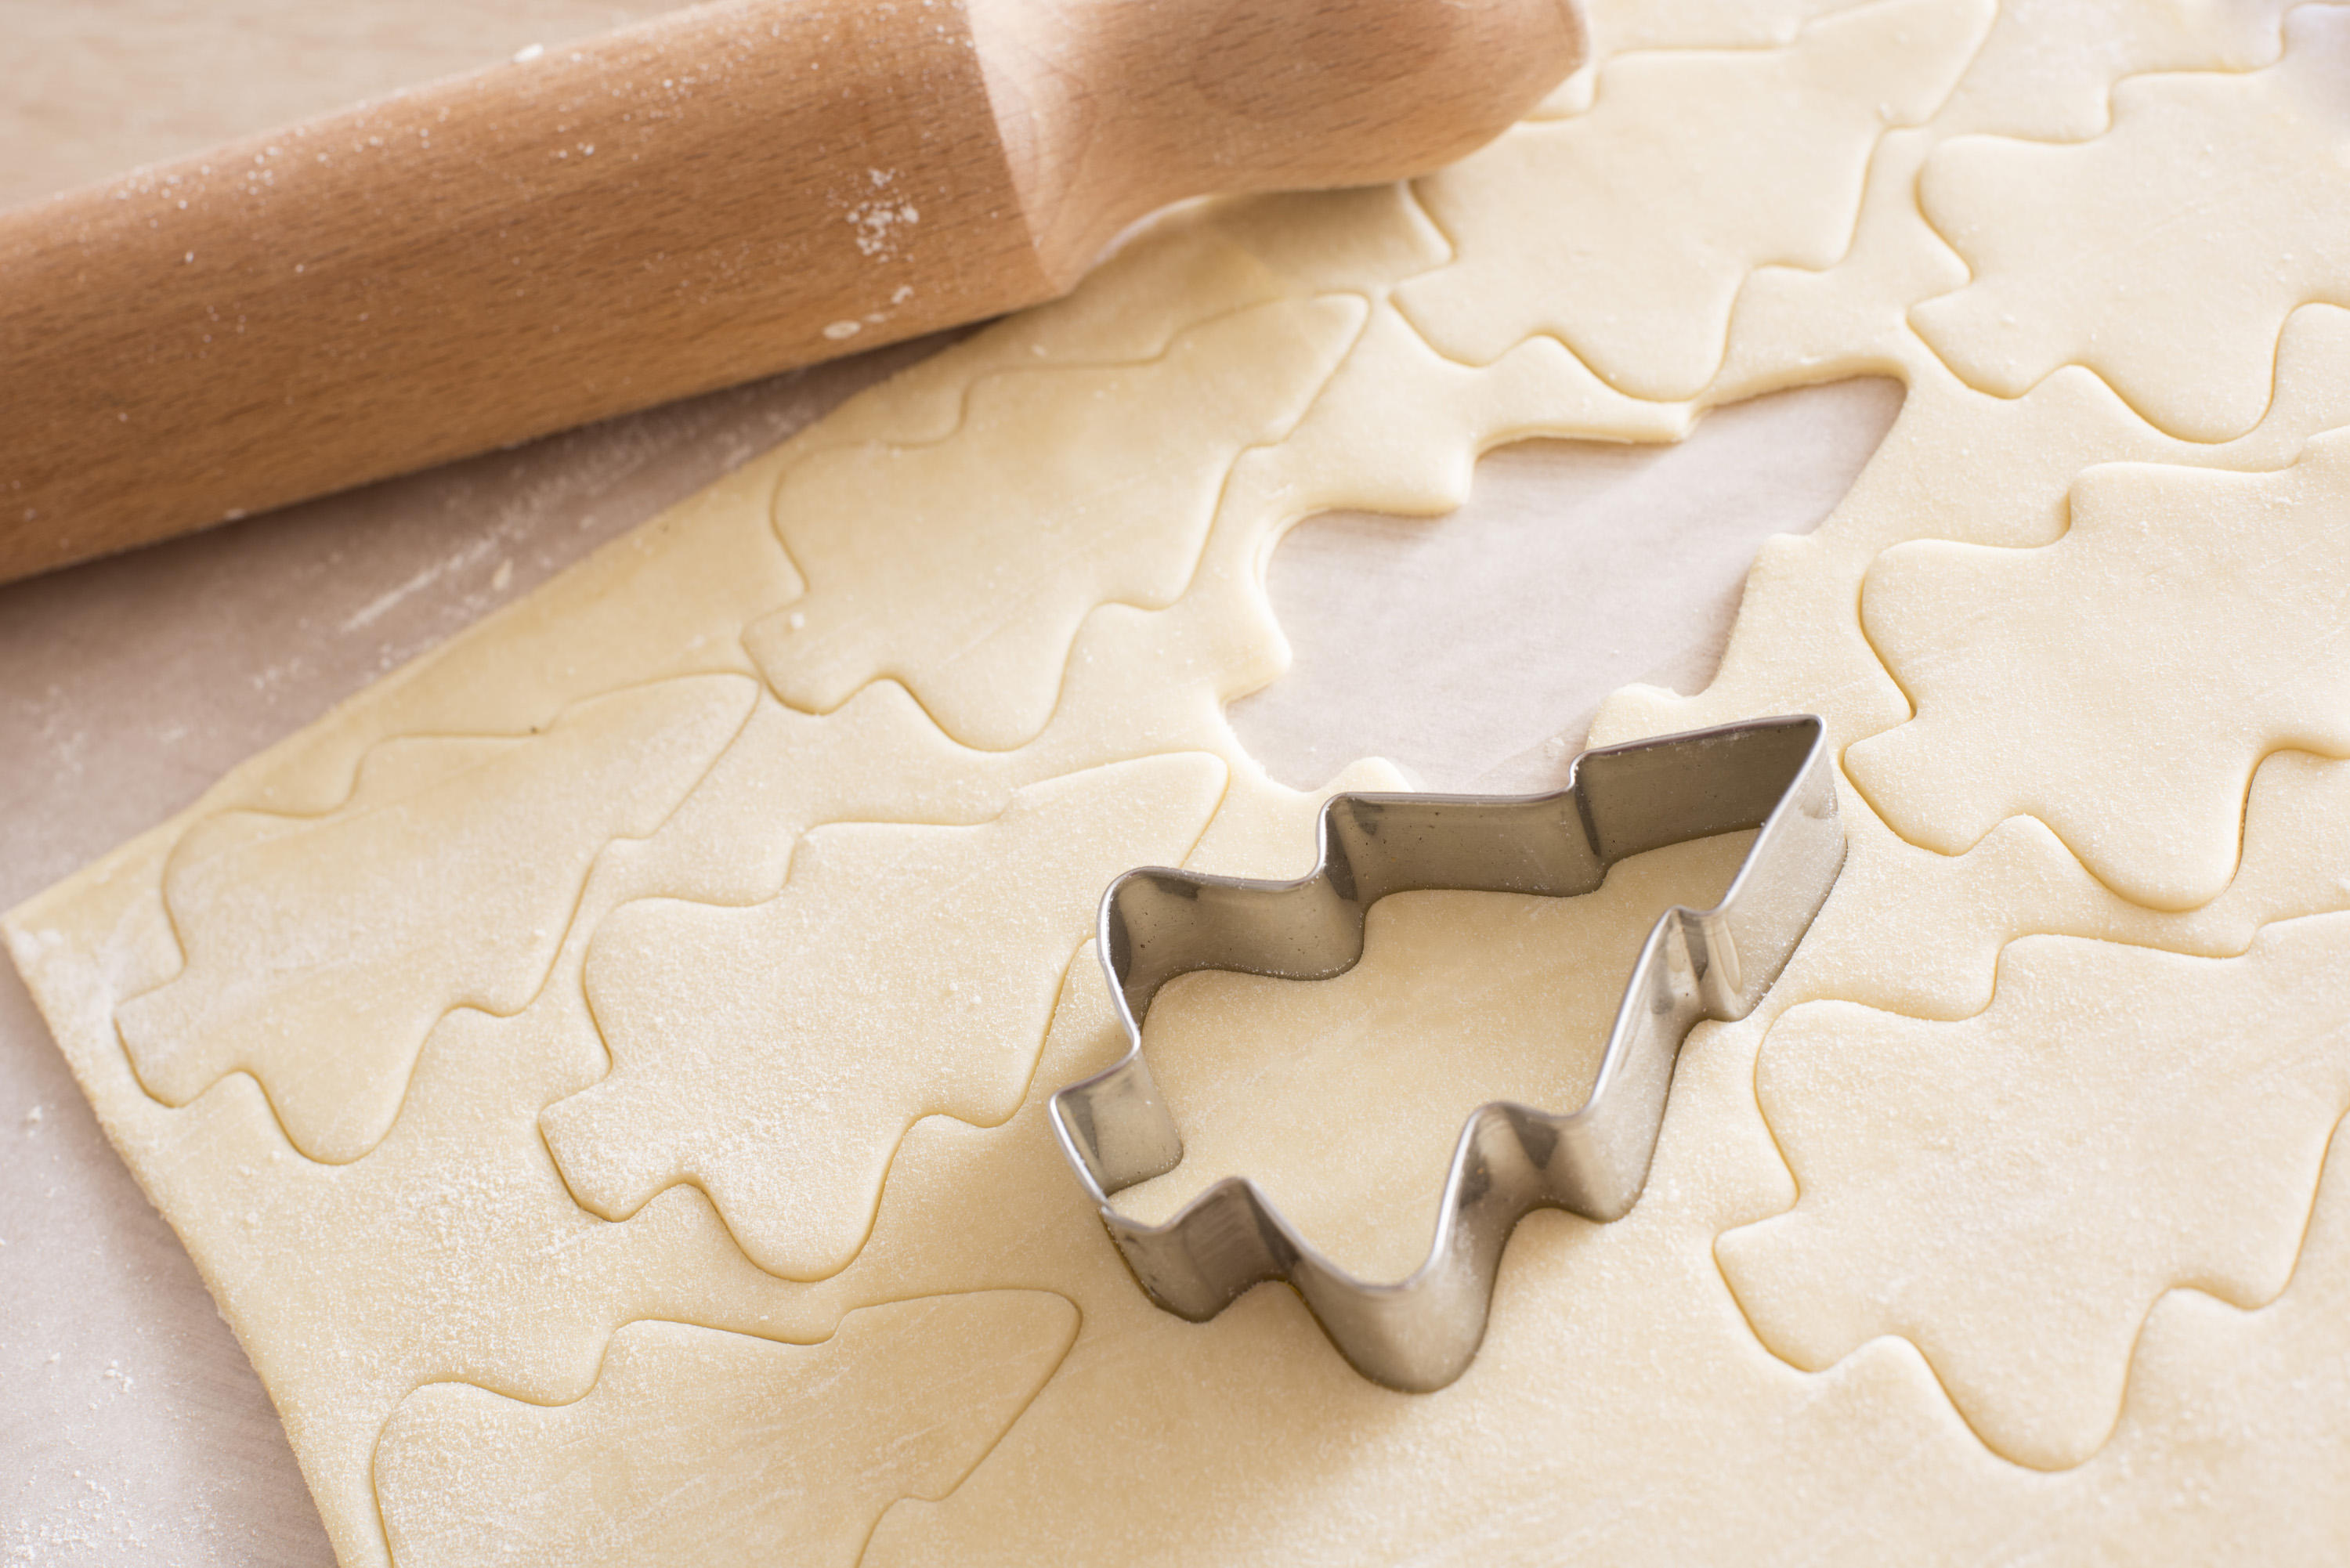 Making Christmas tree cookies in a home kitchen with rolled uncooked pastry with cut out shapes and a metal cookie cutter alongside a wooden rolling pin